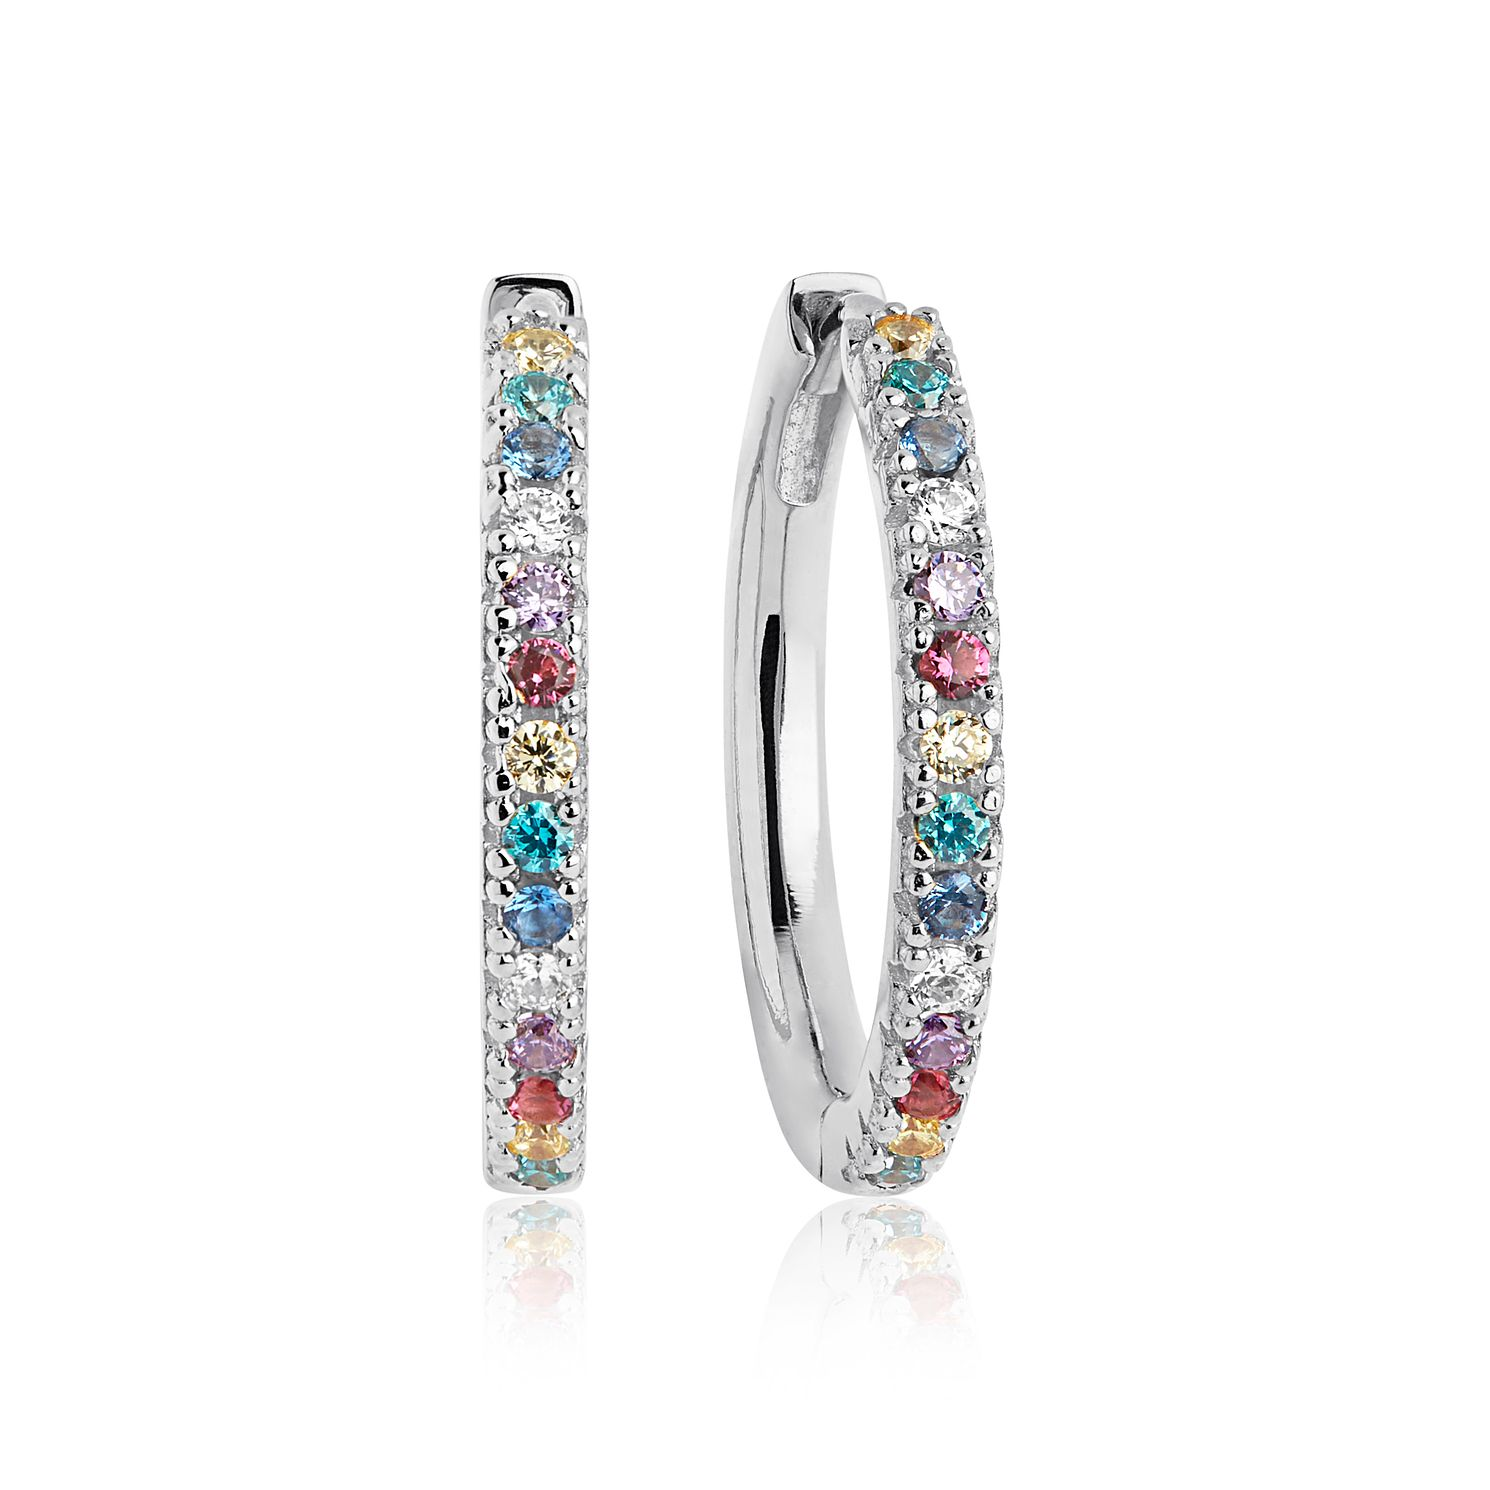 Sif Jakobs Ellera Multicolour Zirconia Hoop Earrings - 20mm - Product number 6095674